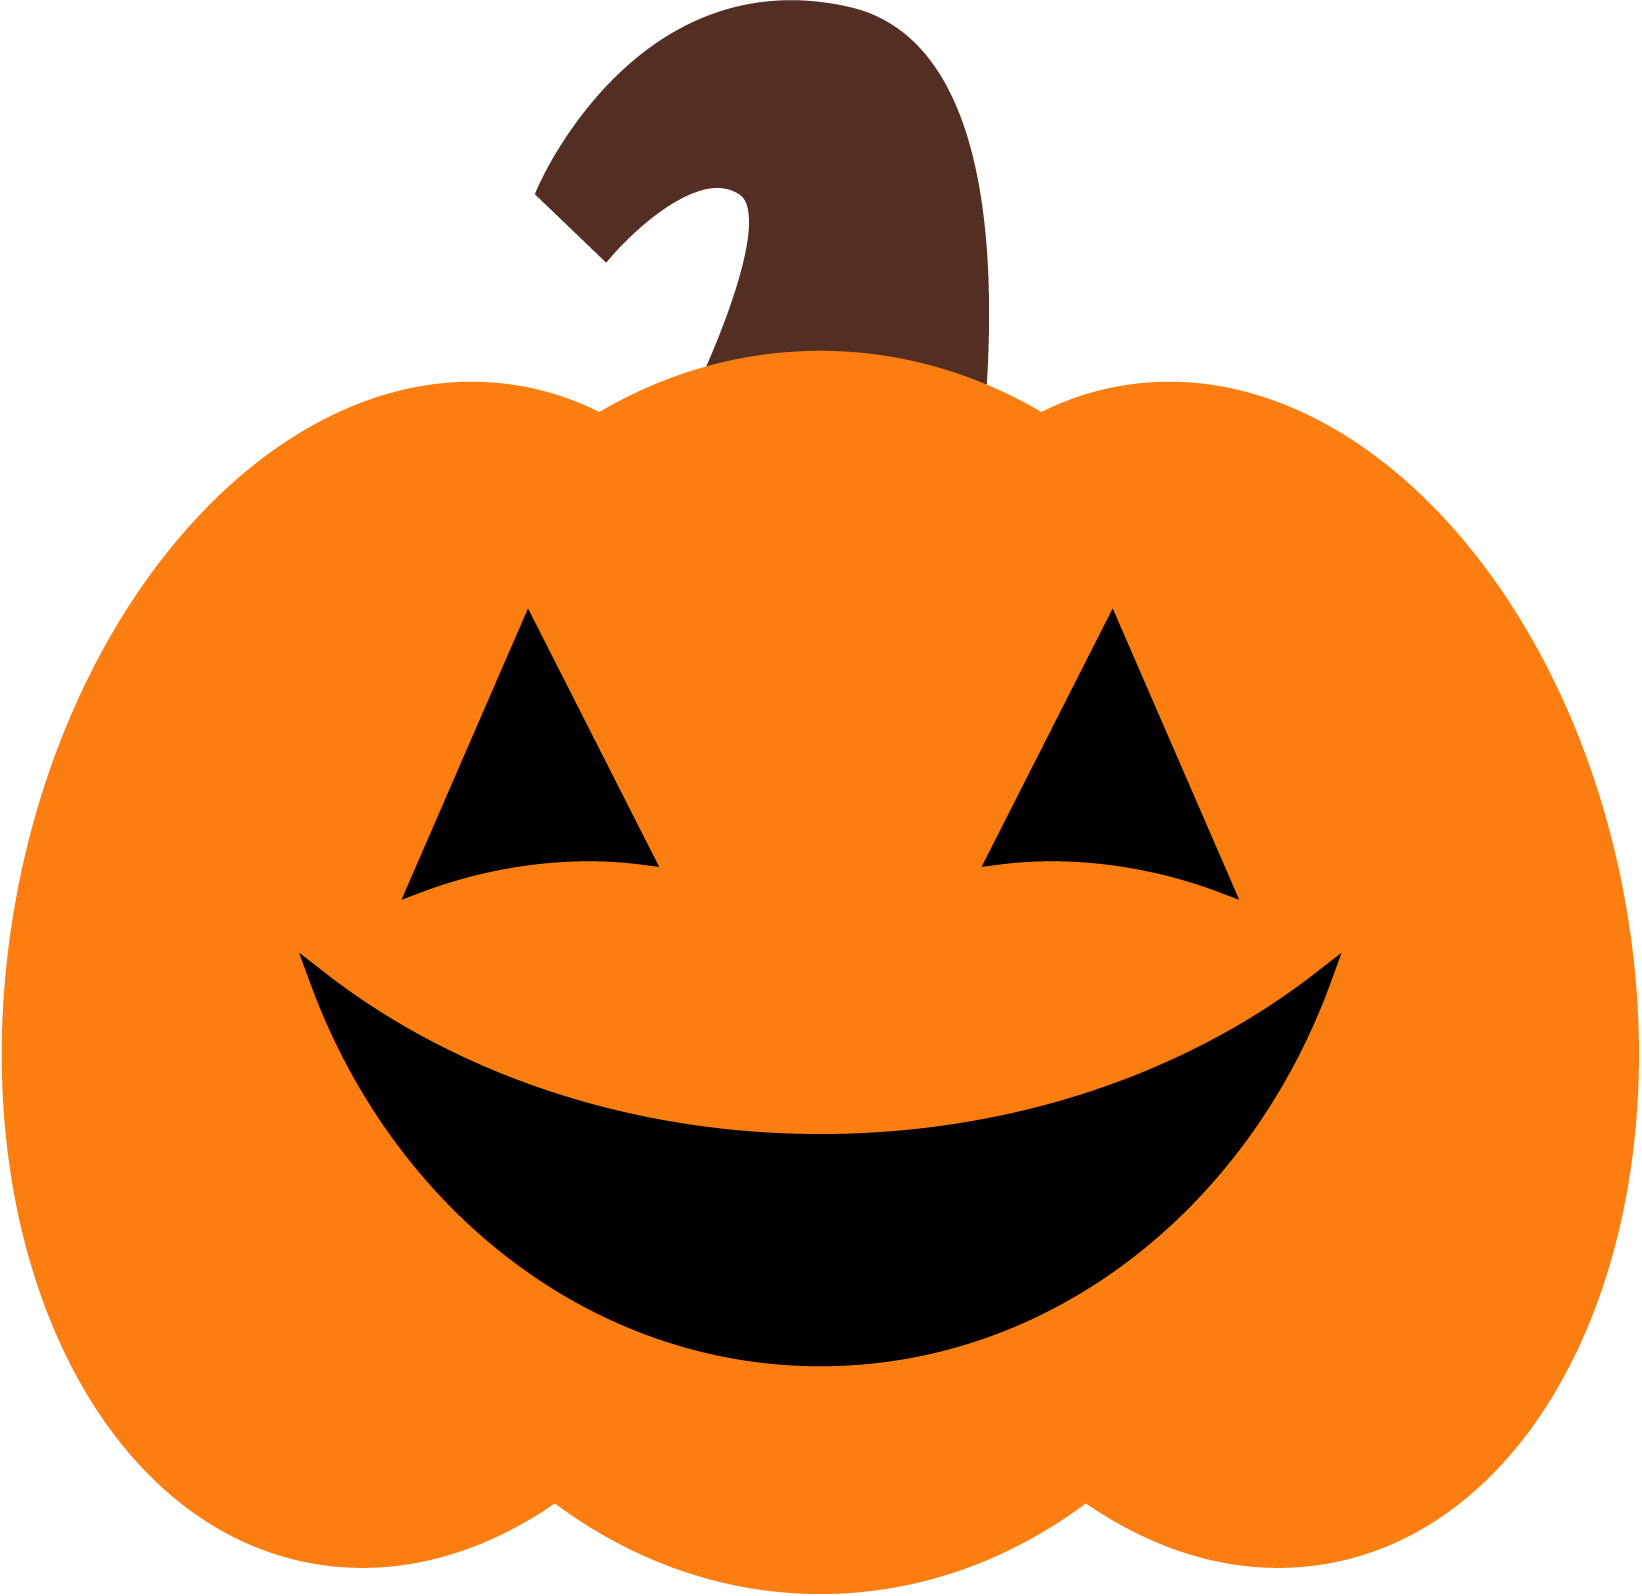 Pumpkin clipart. Cute halloween cyberuse pictures